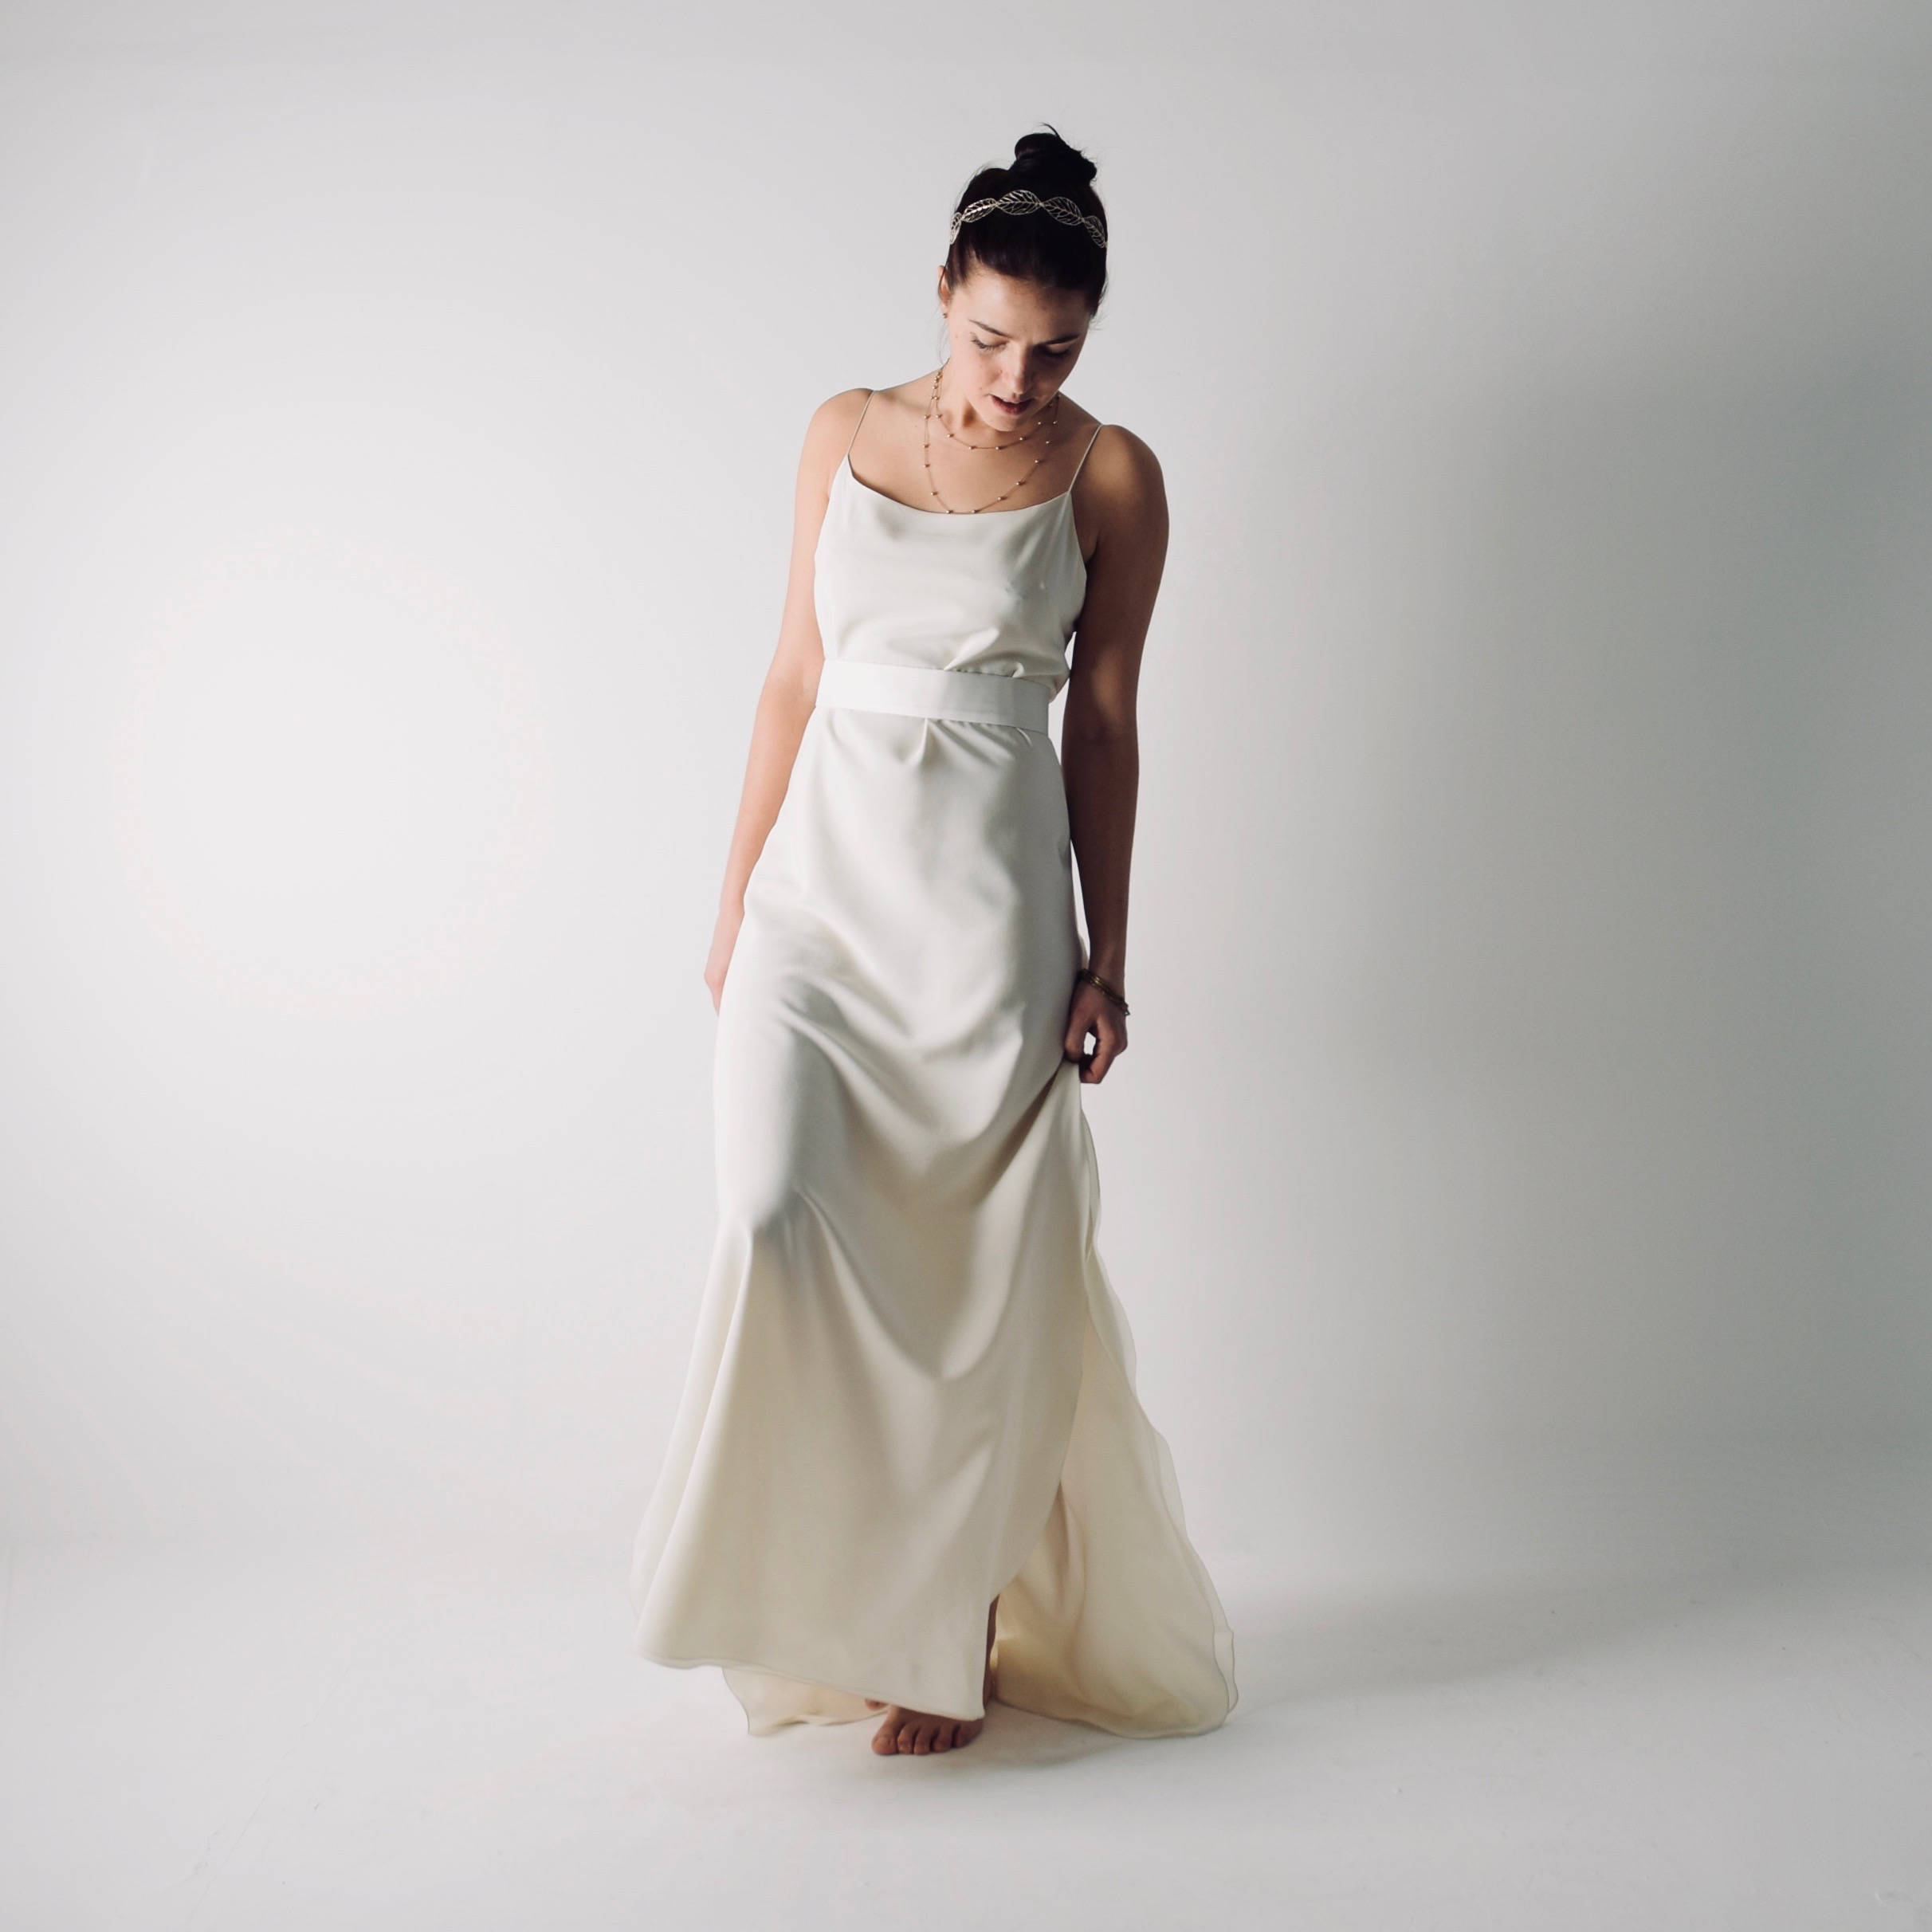 Simple Wedding Dress Divisoria: Simple Slip Wedding Dress